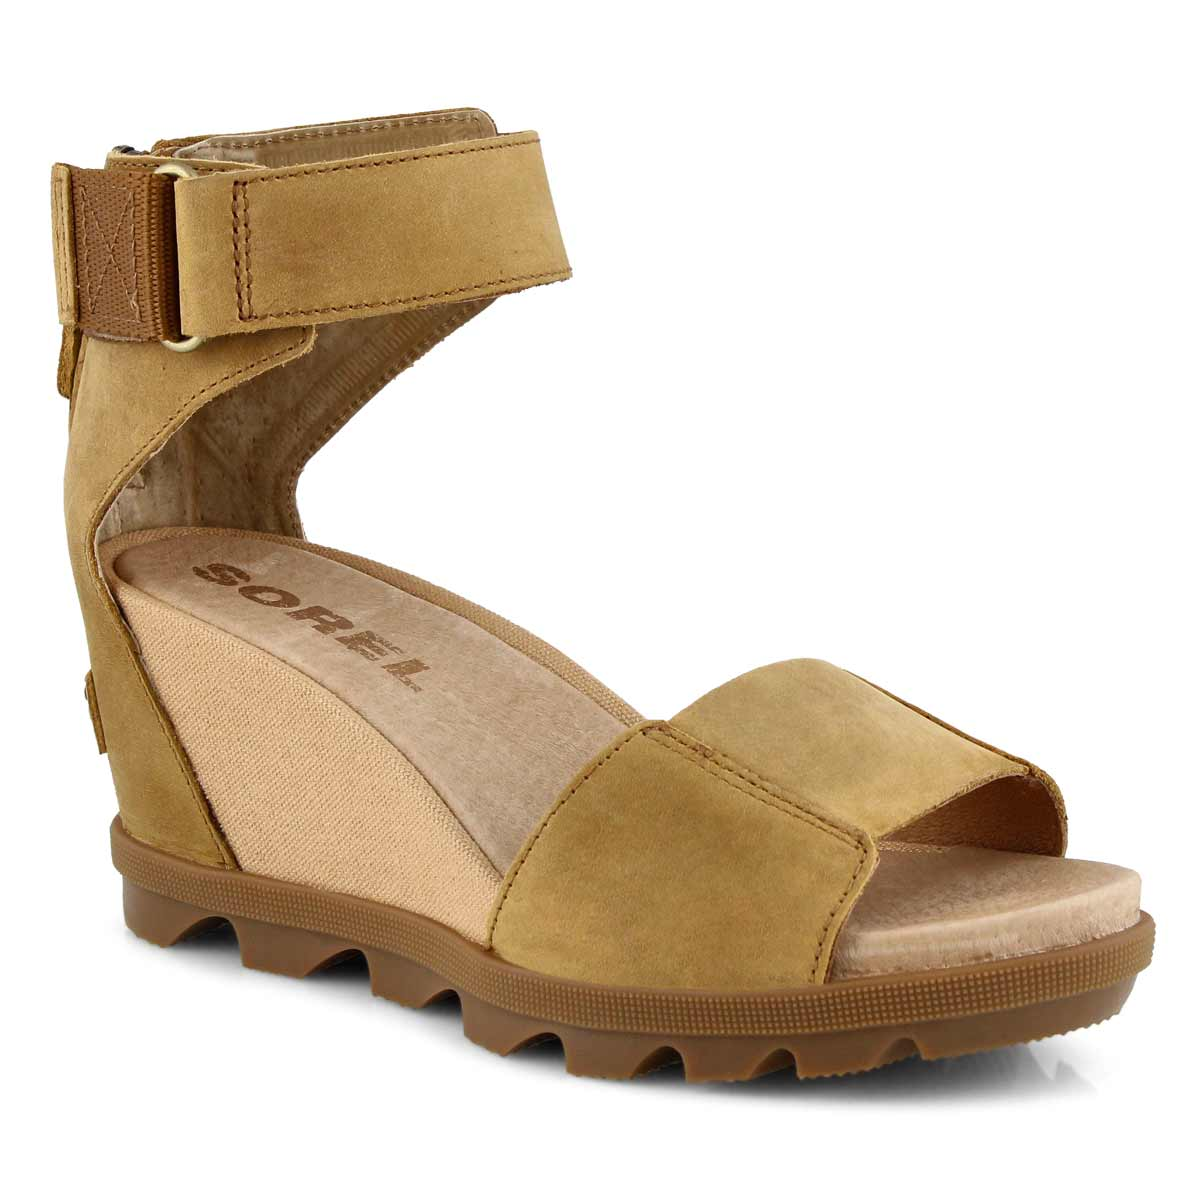 Lds Joanie II Ankle Strap cml wedge sndl